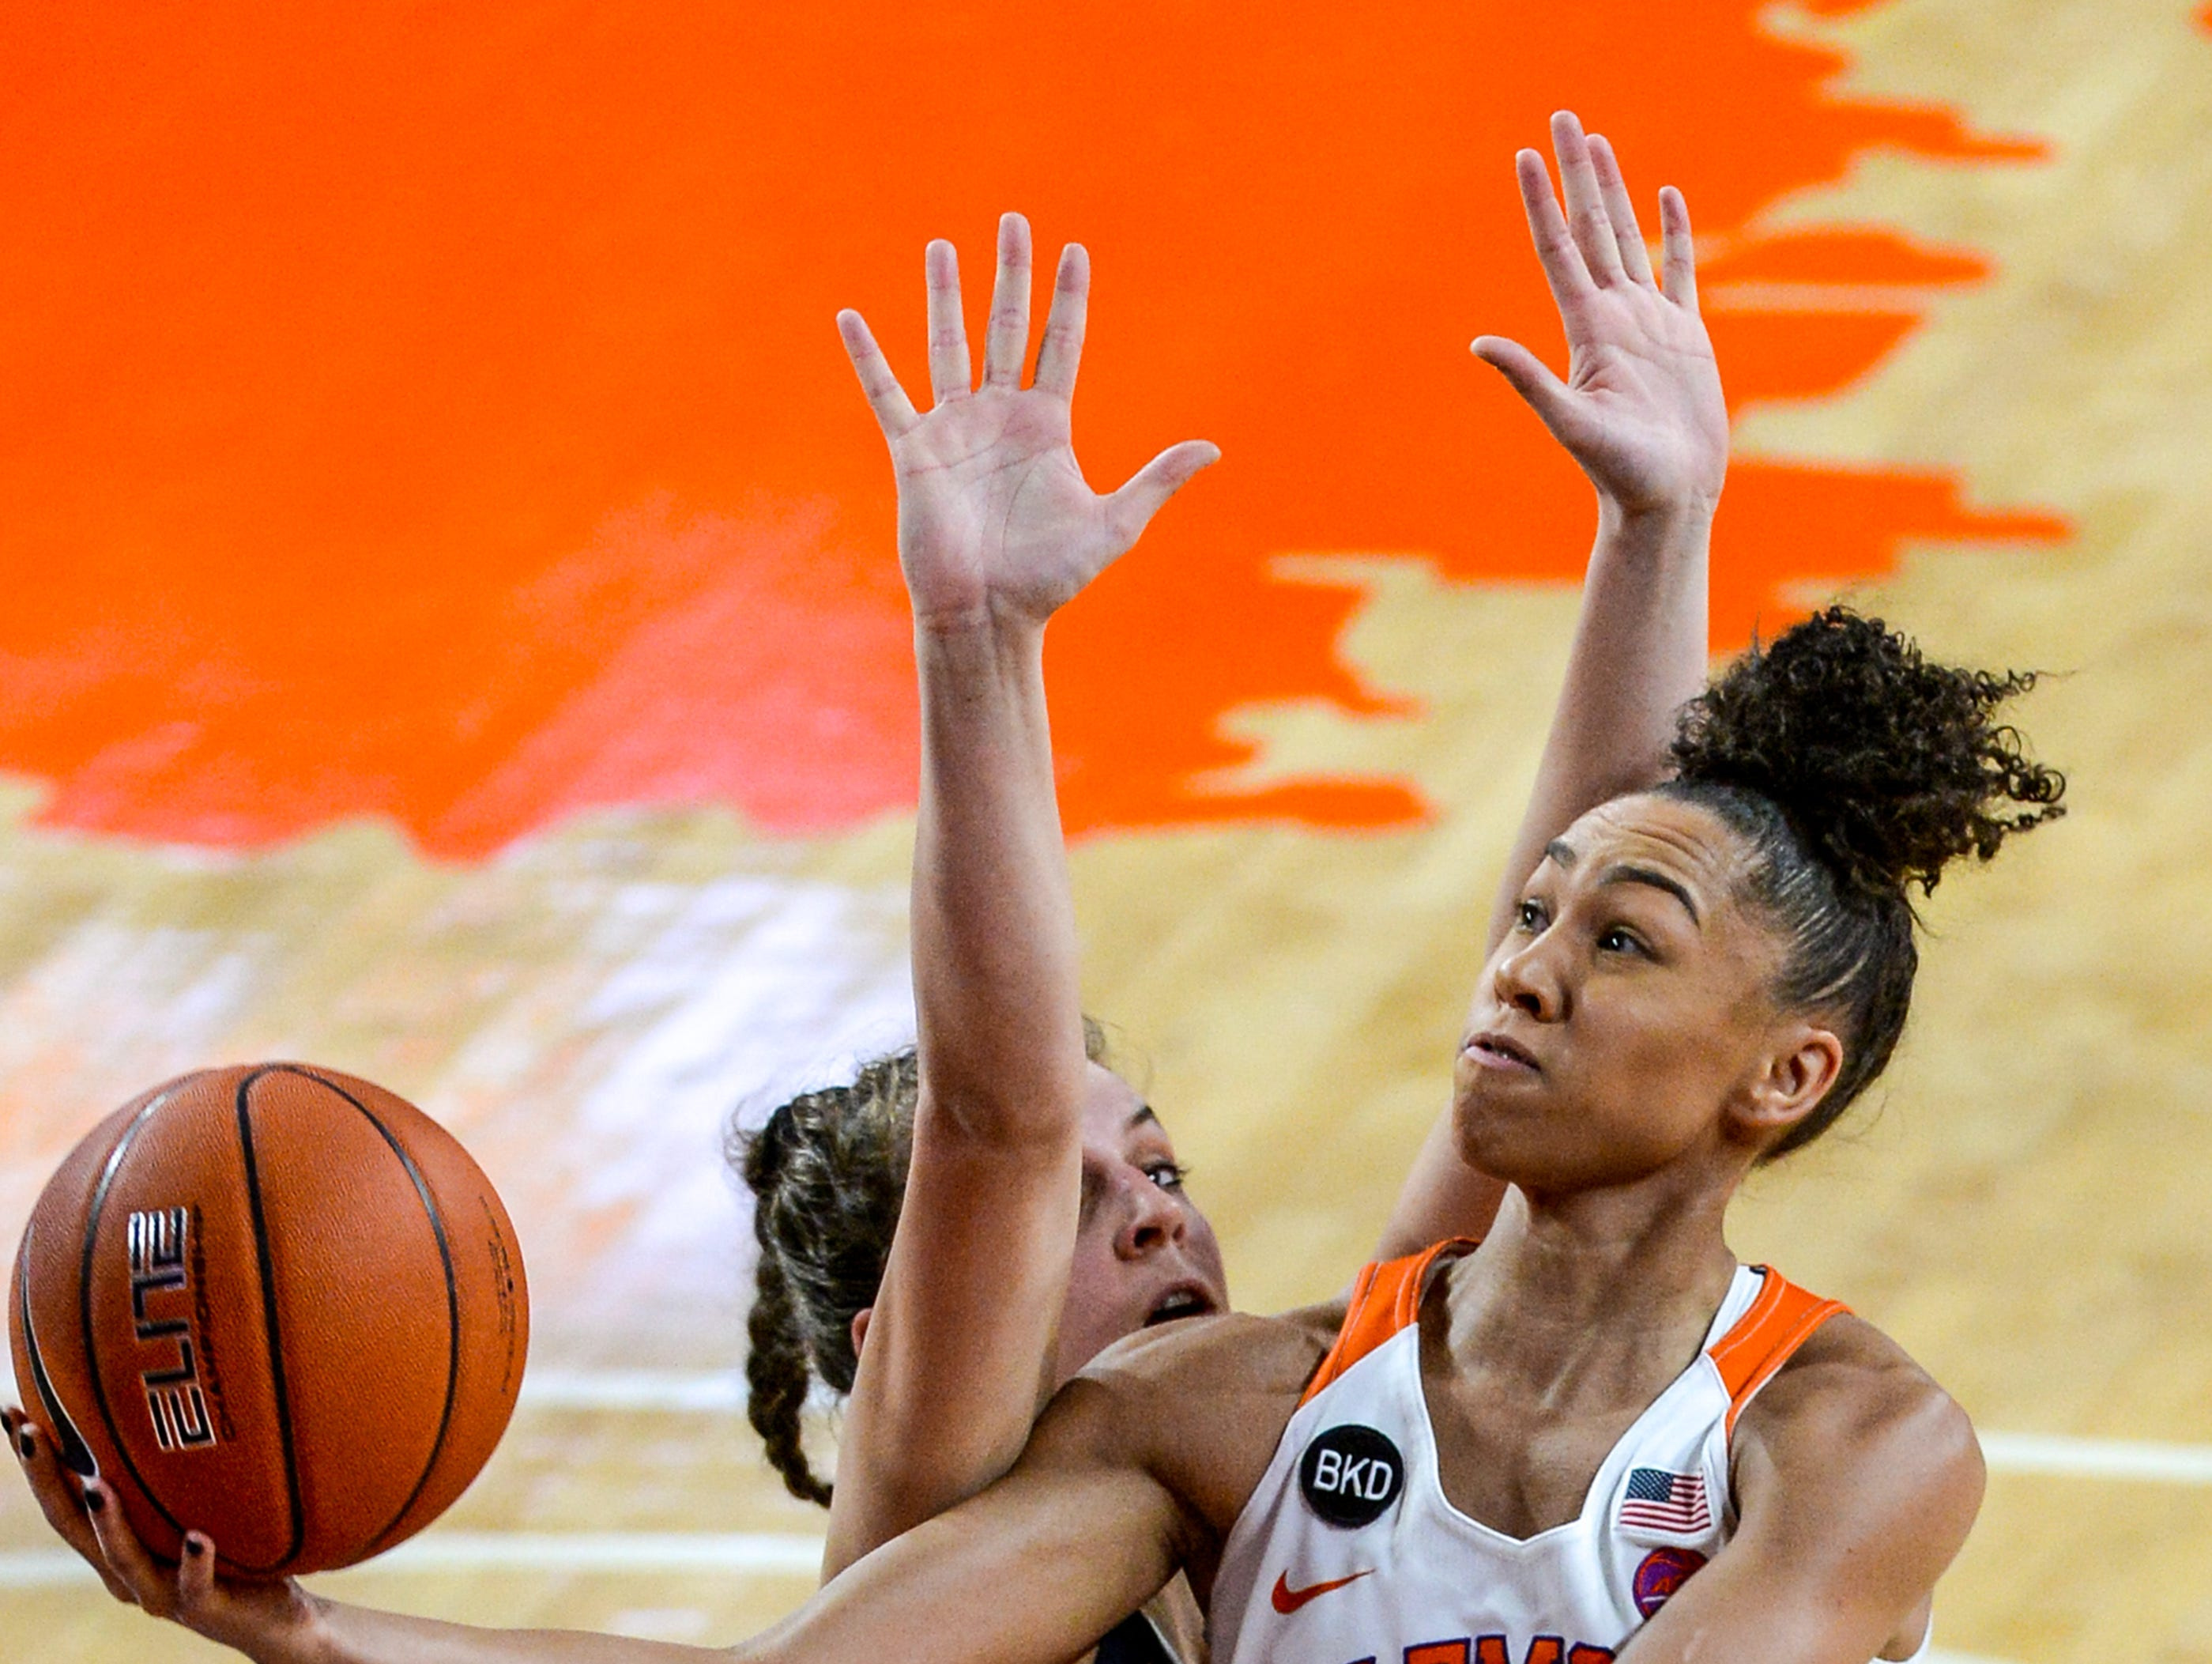 Clemson guard Danielle Edwards(5) shoots against Georgia Tech during the first quarter at Littlejohn Coliseum in Clemson Thursday, January 17, 2019.